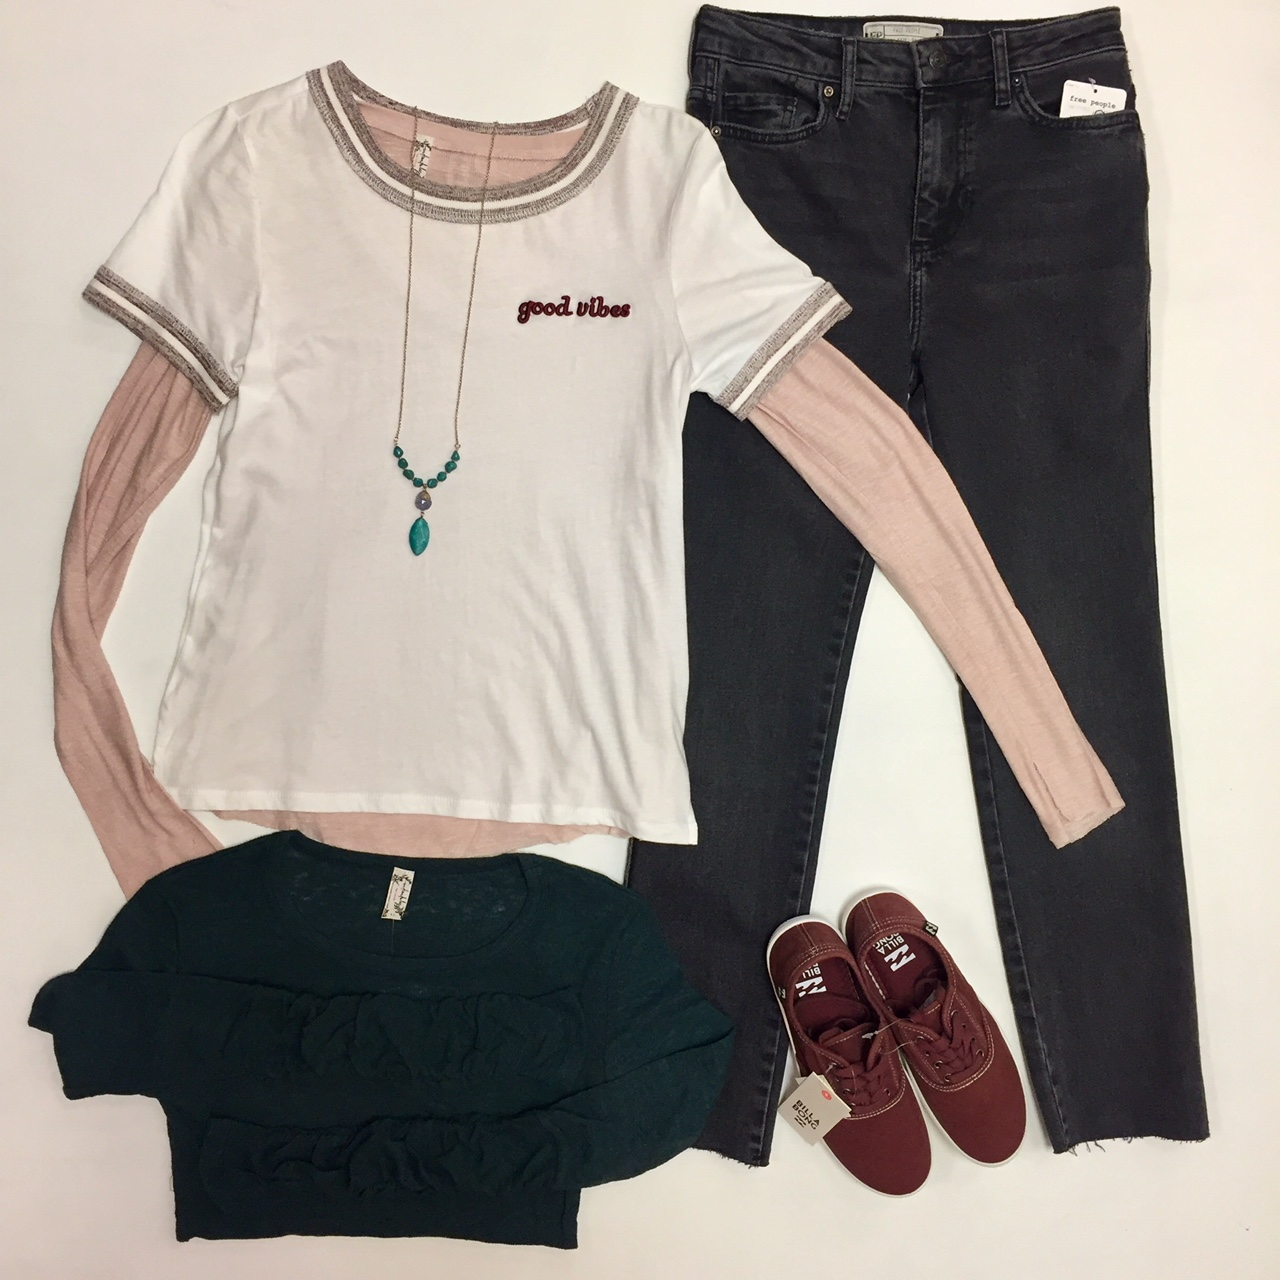 Blush Free People Layering Top $40, Teal Free People Layering Top $40, Good Vibes Tee $34, Free People Denim $78, Necklace $28, Sneakers $39.95